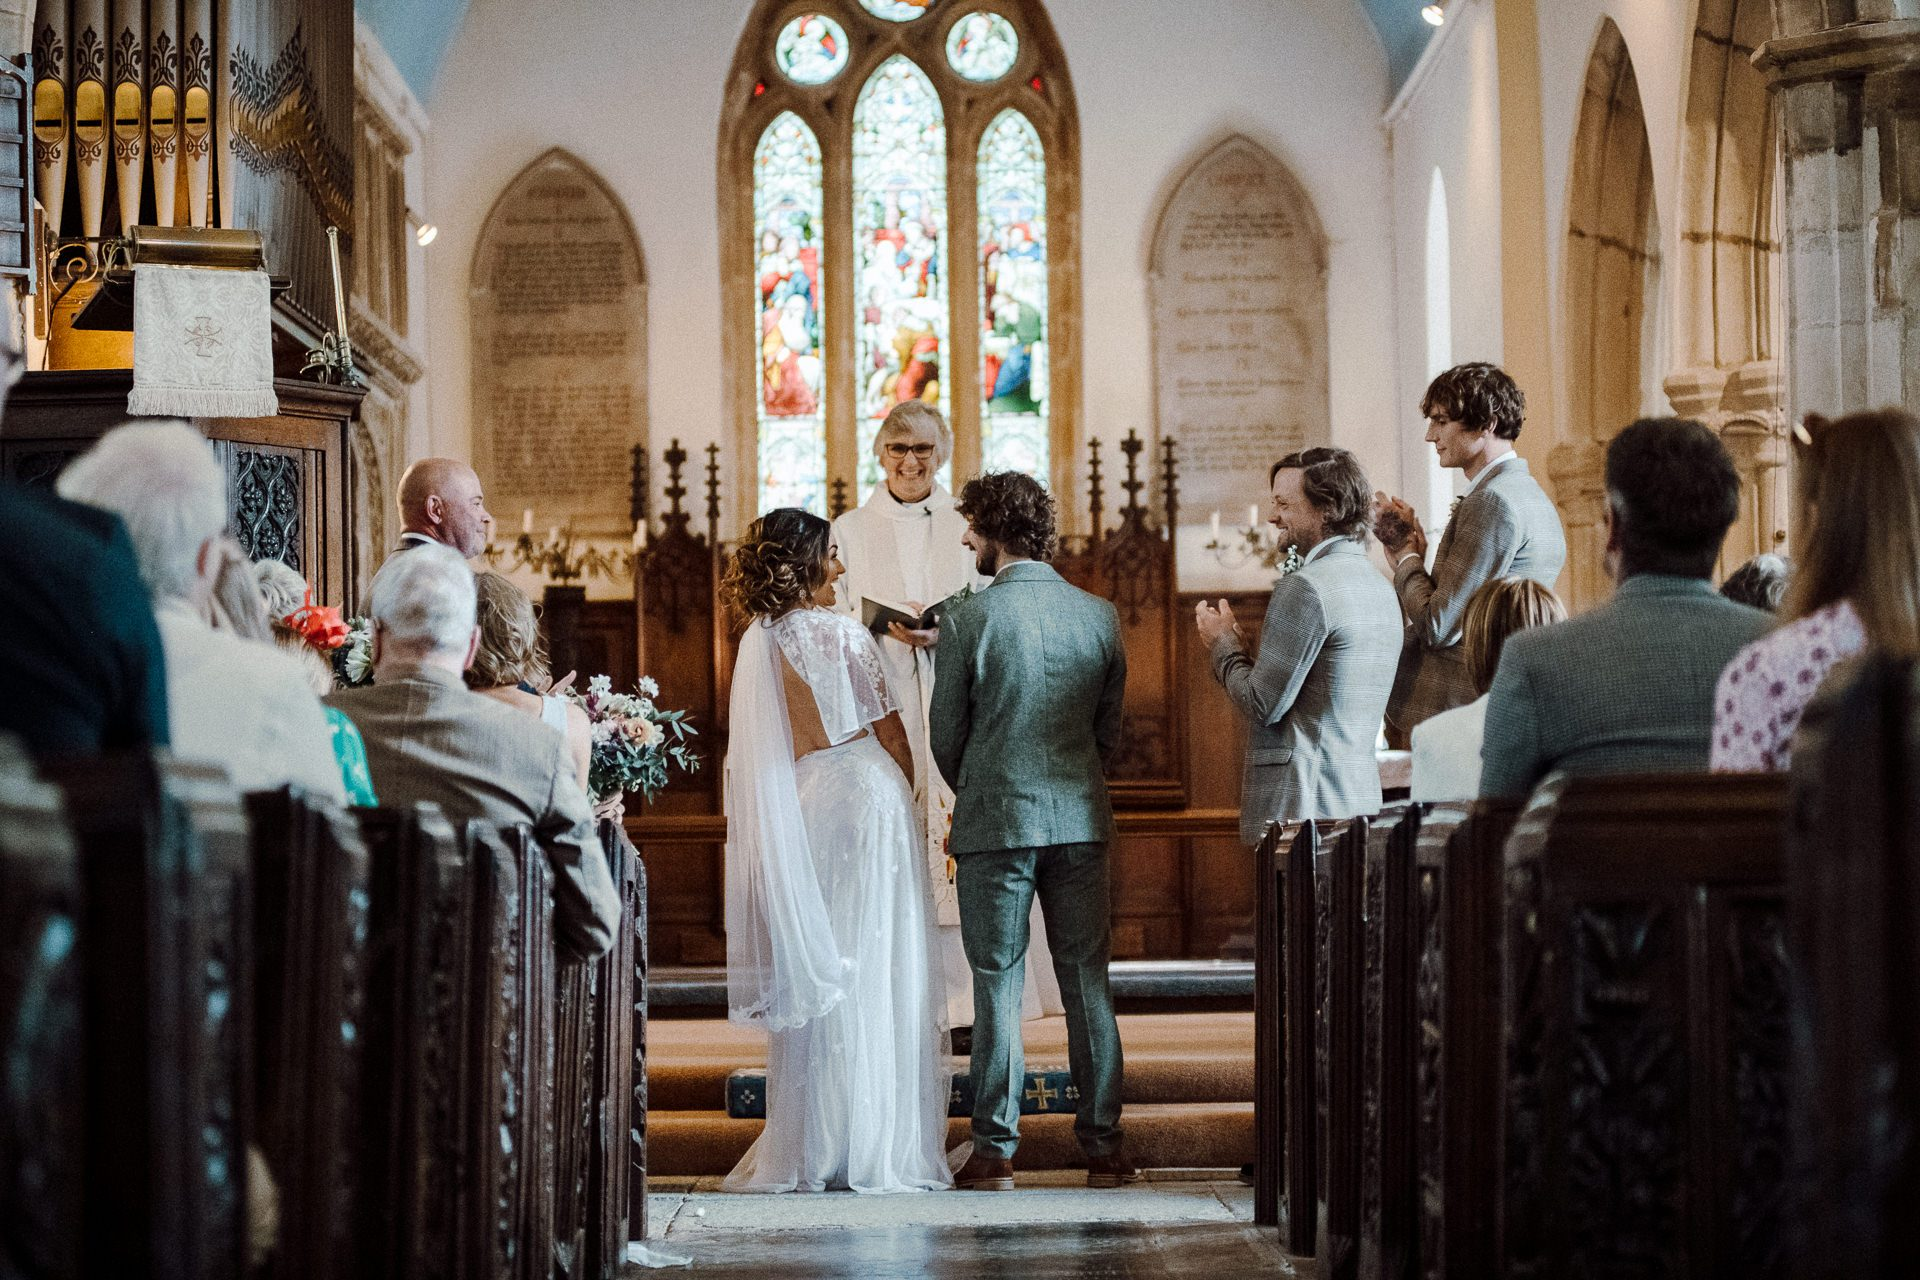 0040-DEVON-SOMERSET-WEDDING-PHOTOGRAPHER-0156-BEST-OF-2019-LOUISE-MAY-DEVON-SOMERSET-WEDDING-PHOTOGRAPHY-LM1_1306